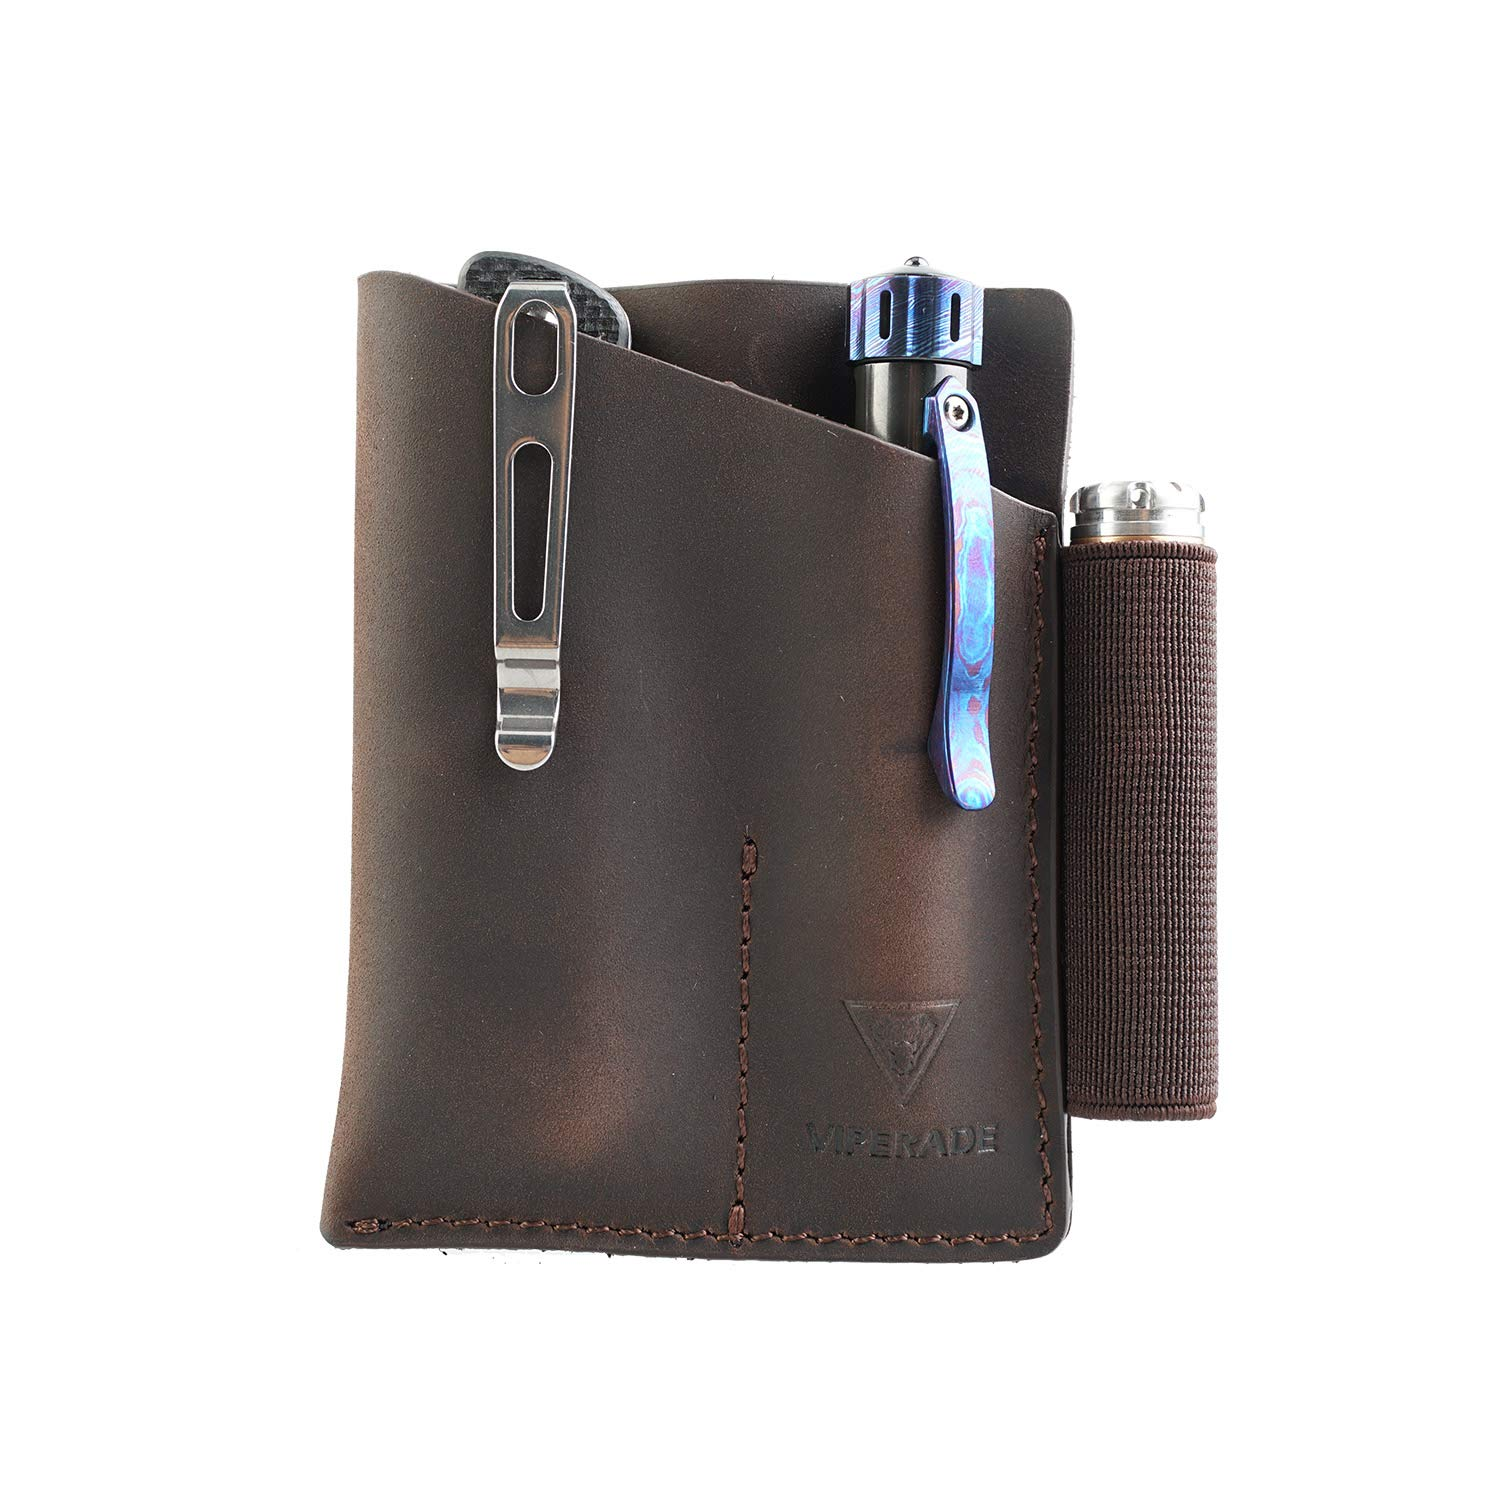 VIPERADE PJ12 Small EDC Leather Pocket Organizer for AA/AAA Flashlights, Mini Pocket Knives, Double EDC Pocket Leather Slip, Knife Organizer Leather Sheath, Flashlight Leather Holster with Clip(Brown)